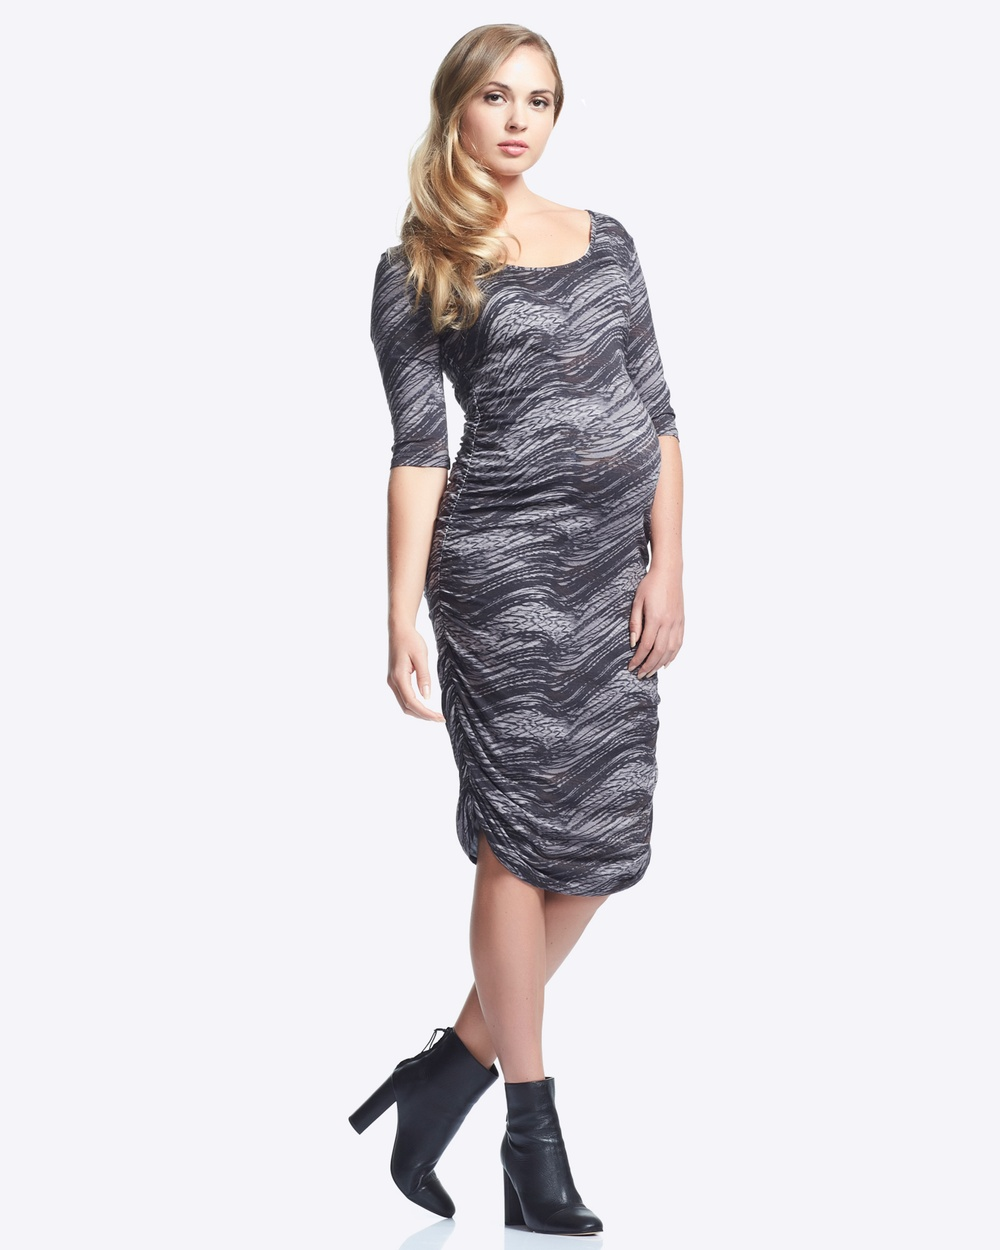 Soon Maternity Celina 3 4 Sleeve Print Maternity Dress Printed Dresses Grey Celina 3-4 Sleeve Print Maternity Dress